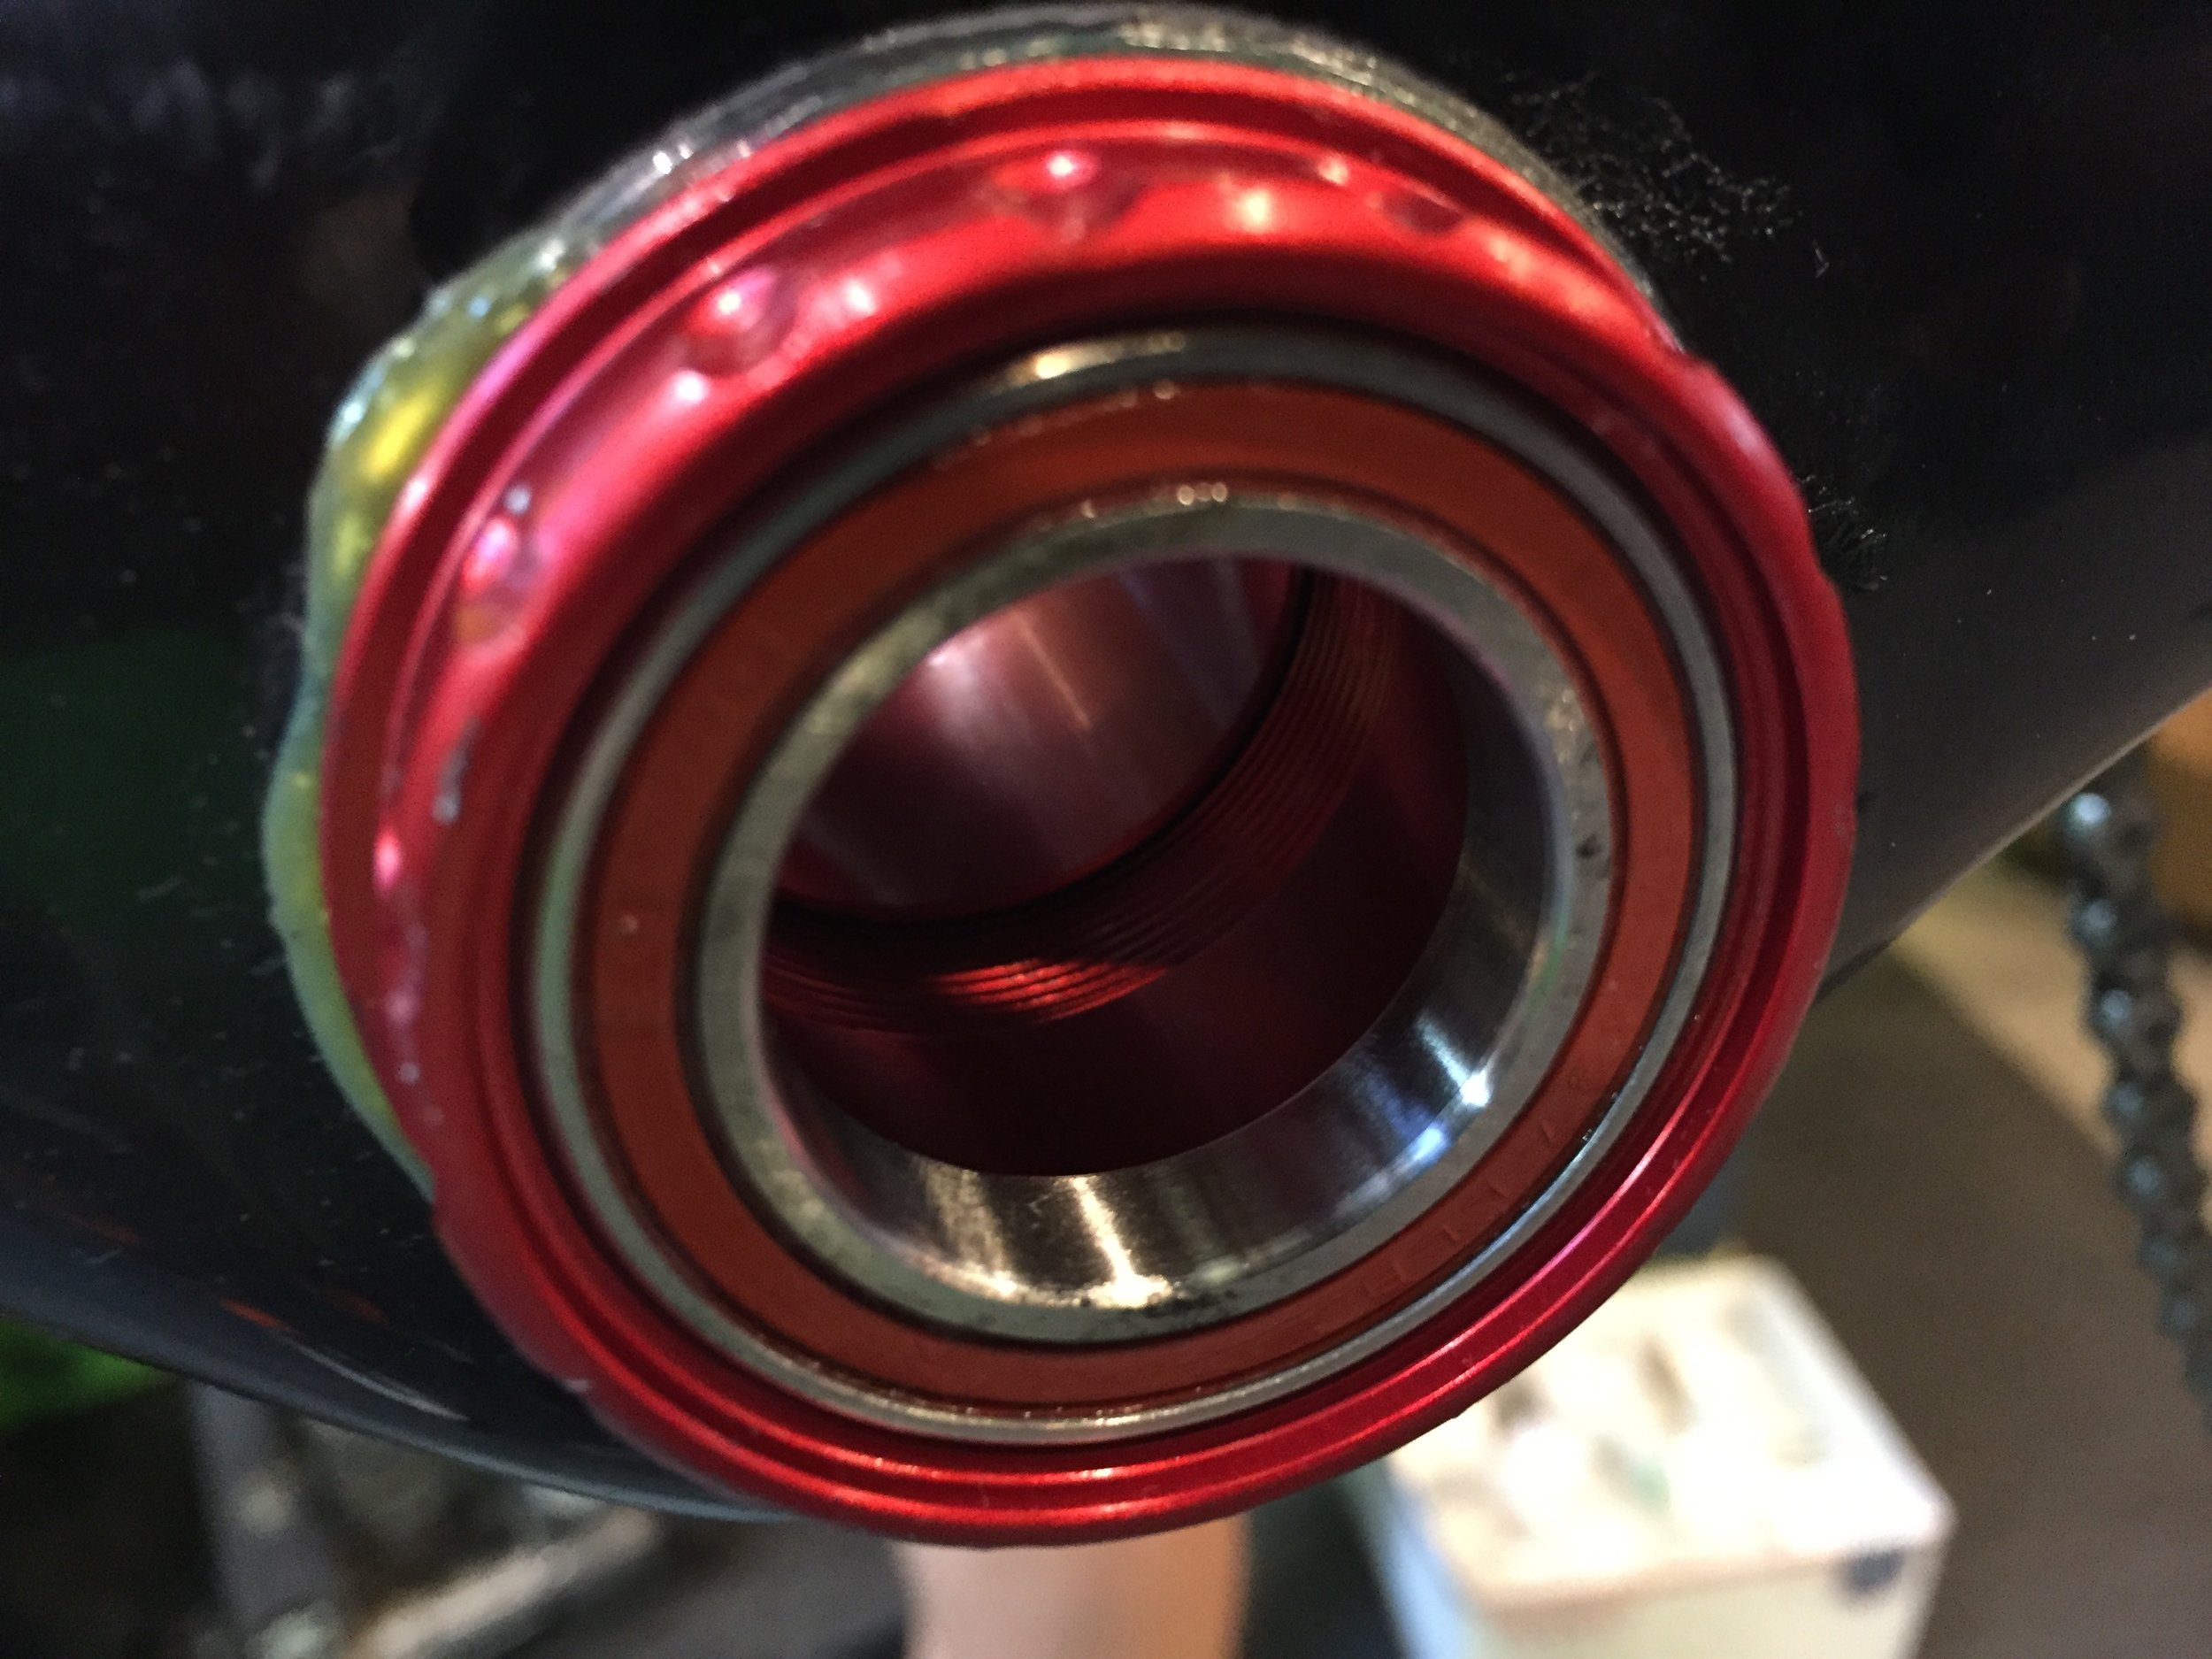 The bottom bracket installed after fewer than three minutes. The outboard part of the bottom bracket is visible when riding. The spacers have been replaced by the outboard part of the bottom bracket.